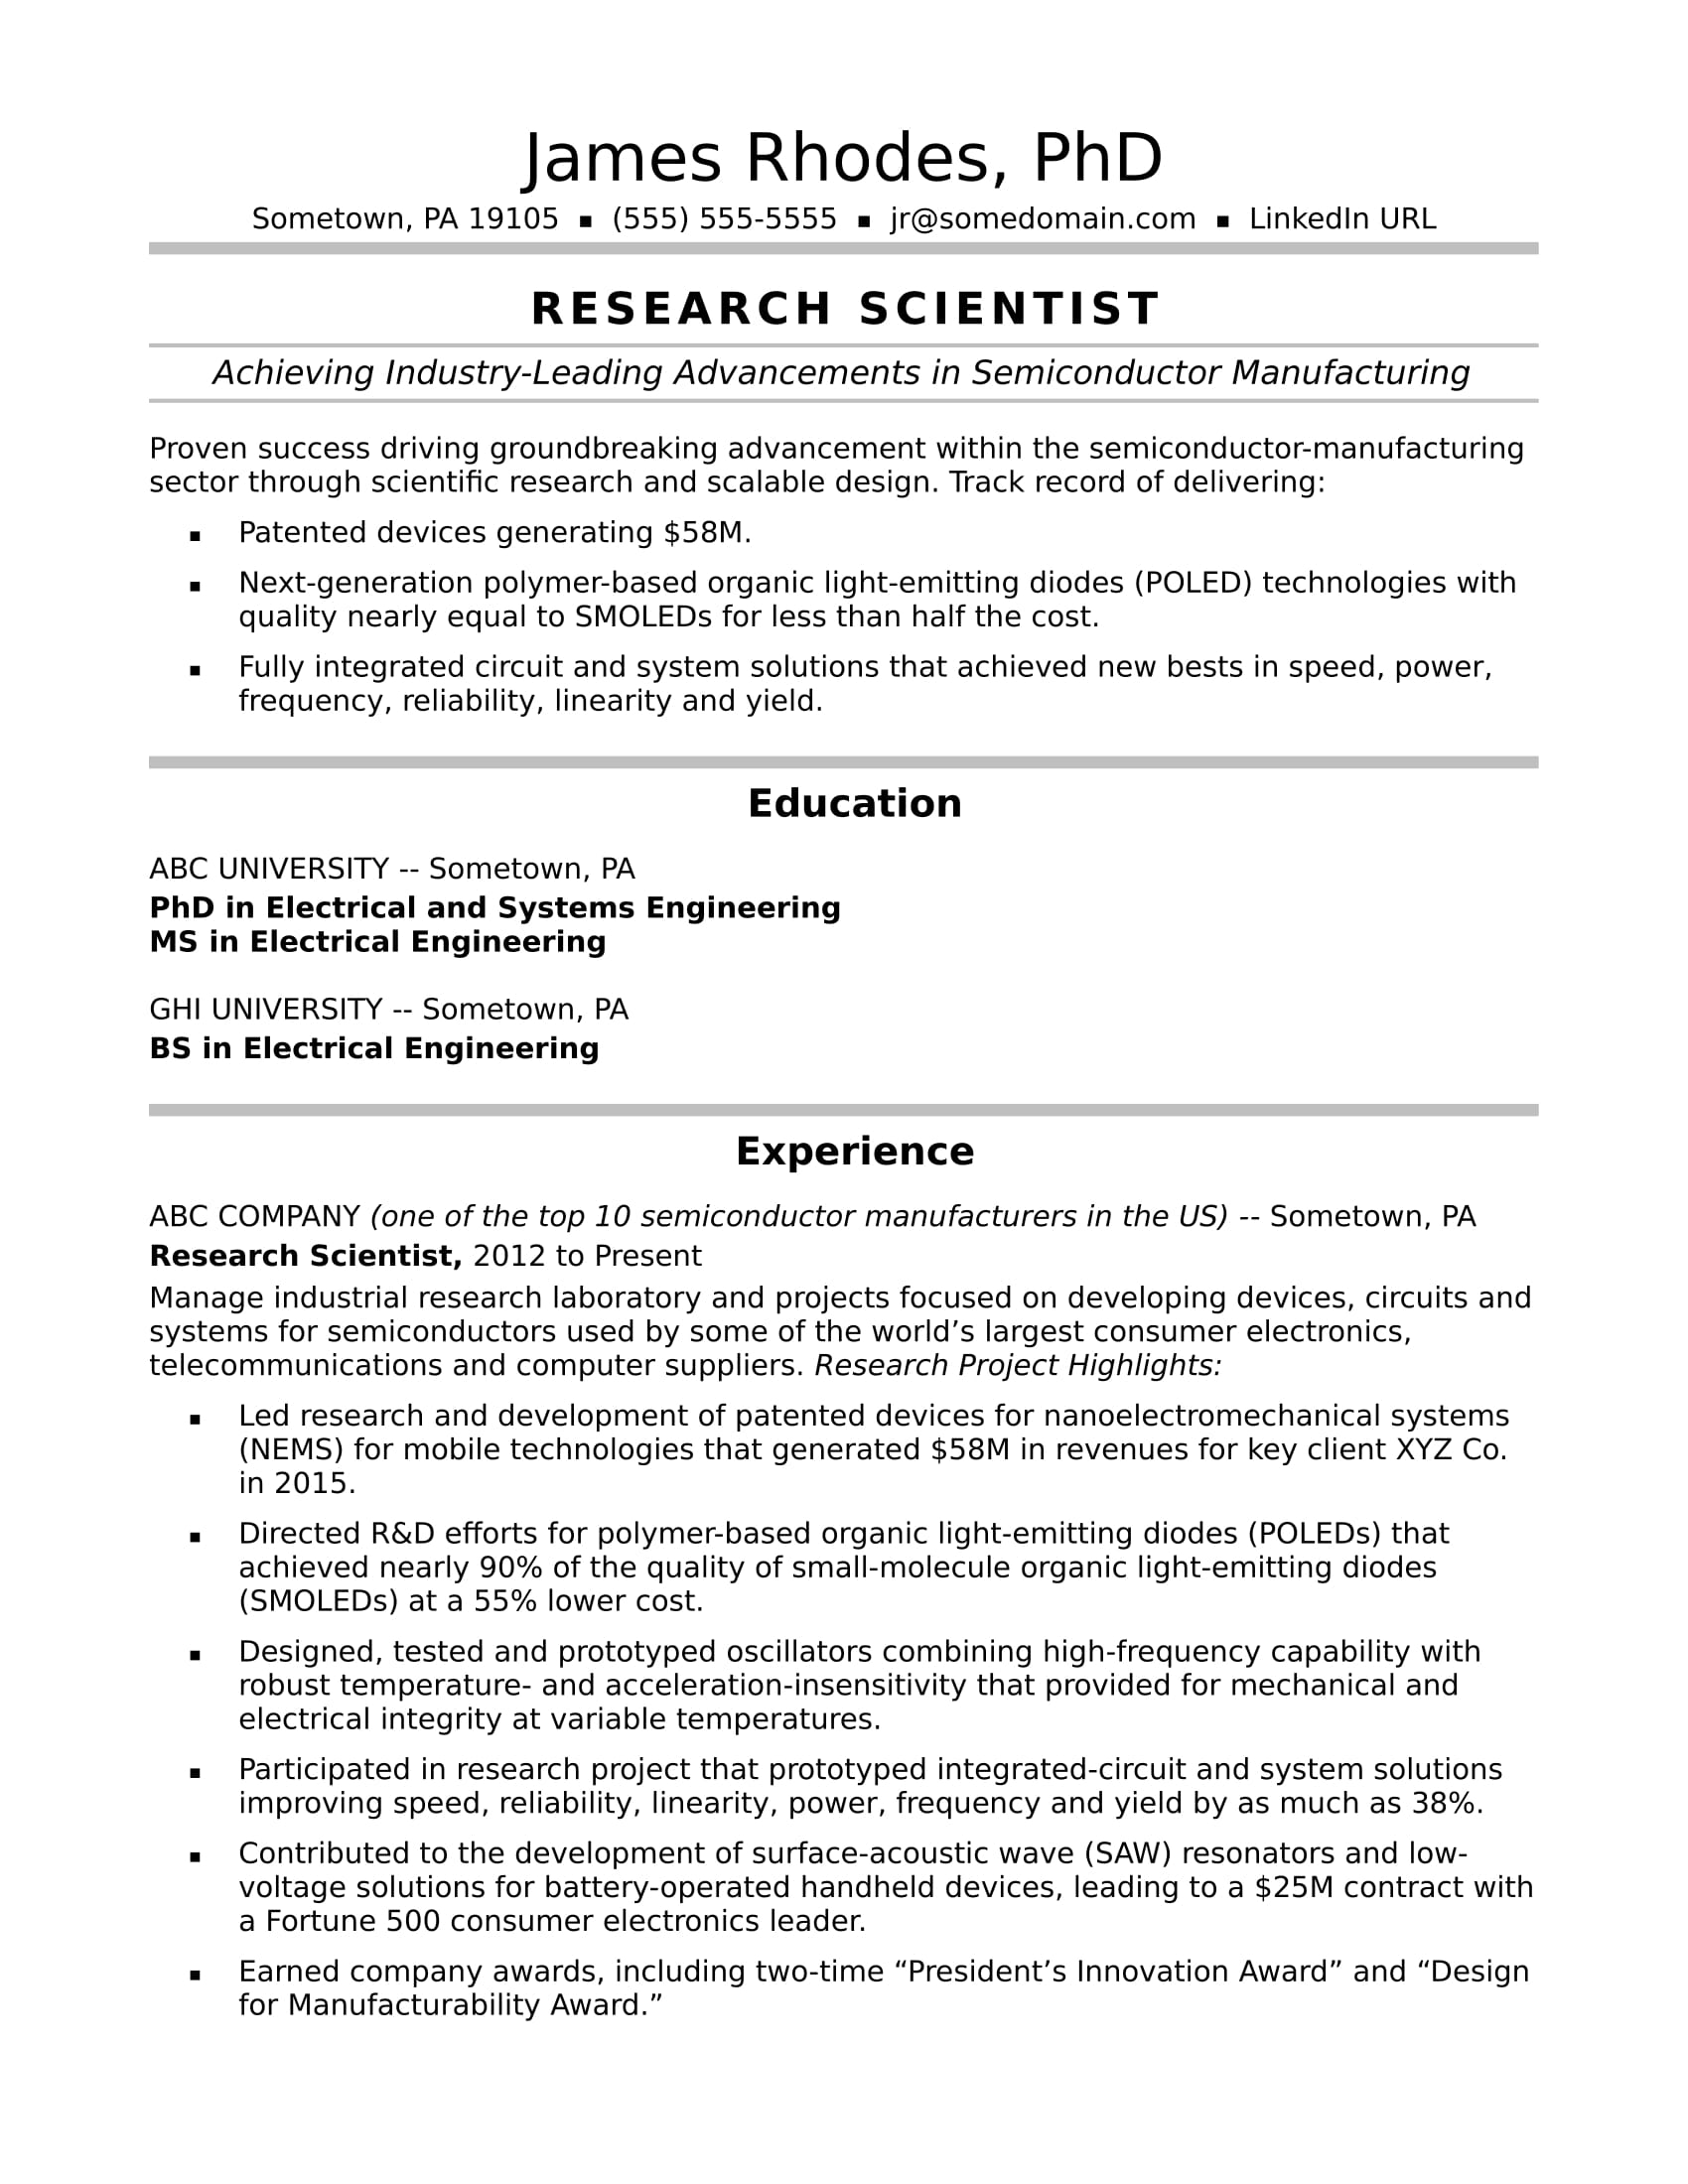 Superb Sample Resume For A Research Scientist Throughout Company Resume Template